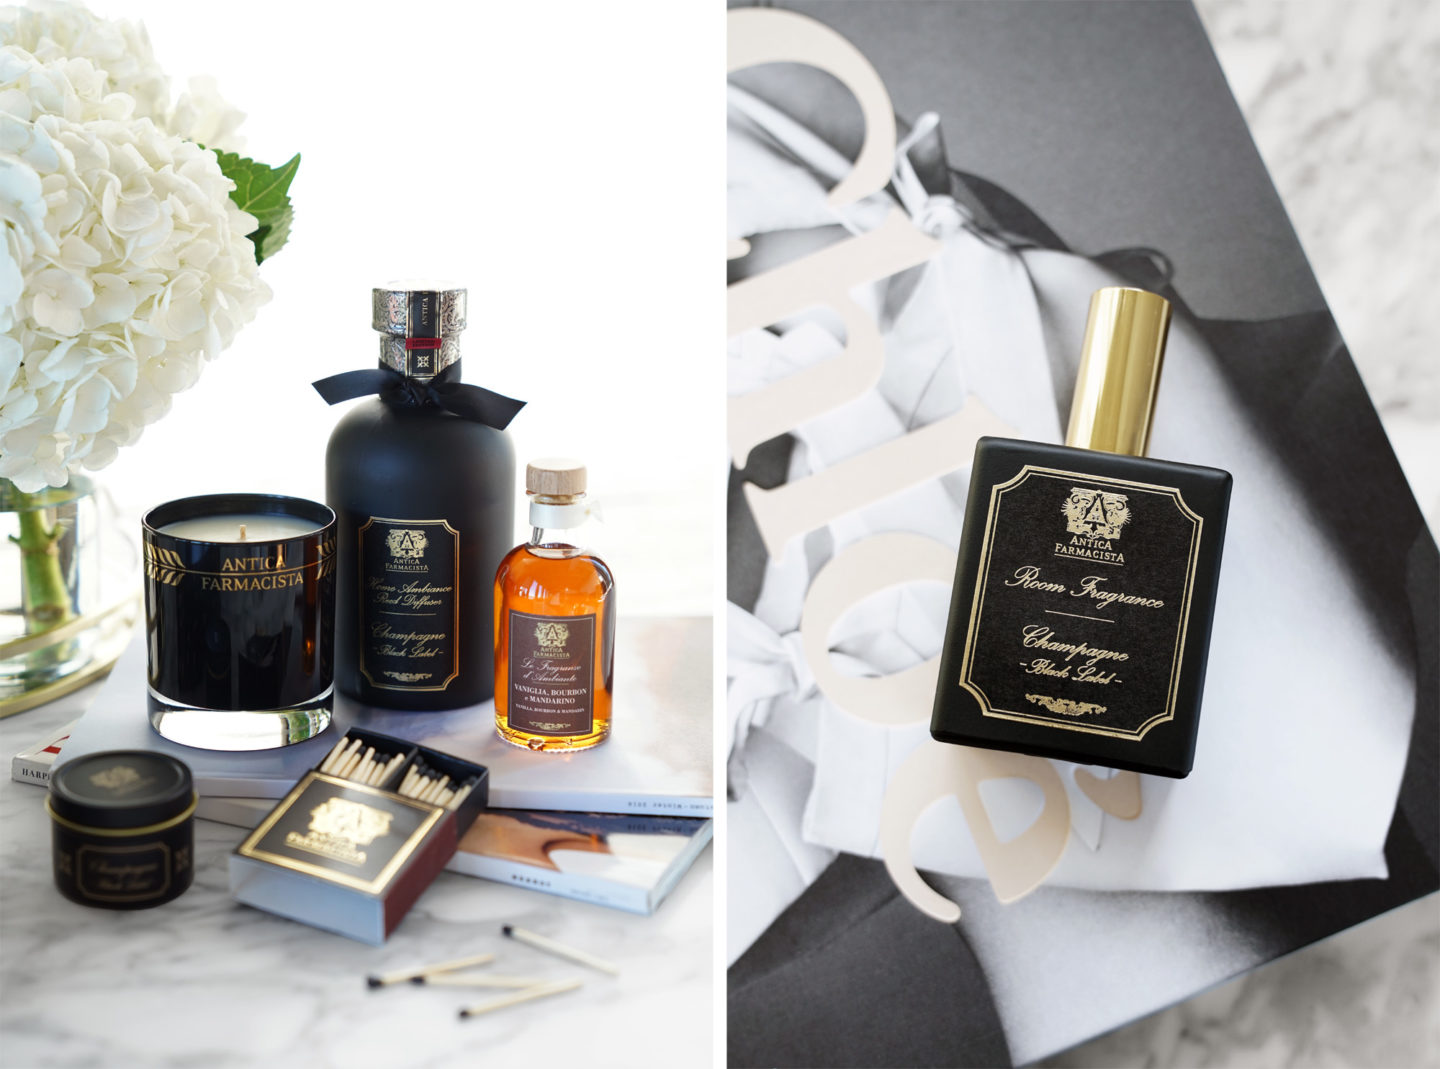 Antica Farmacista Champagne Black Label Diffusers and Room Sprays for holiday